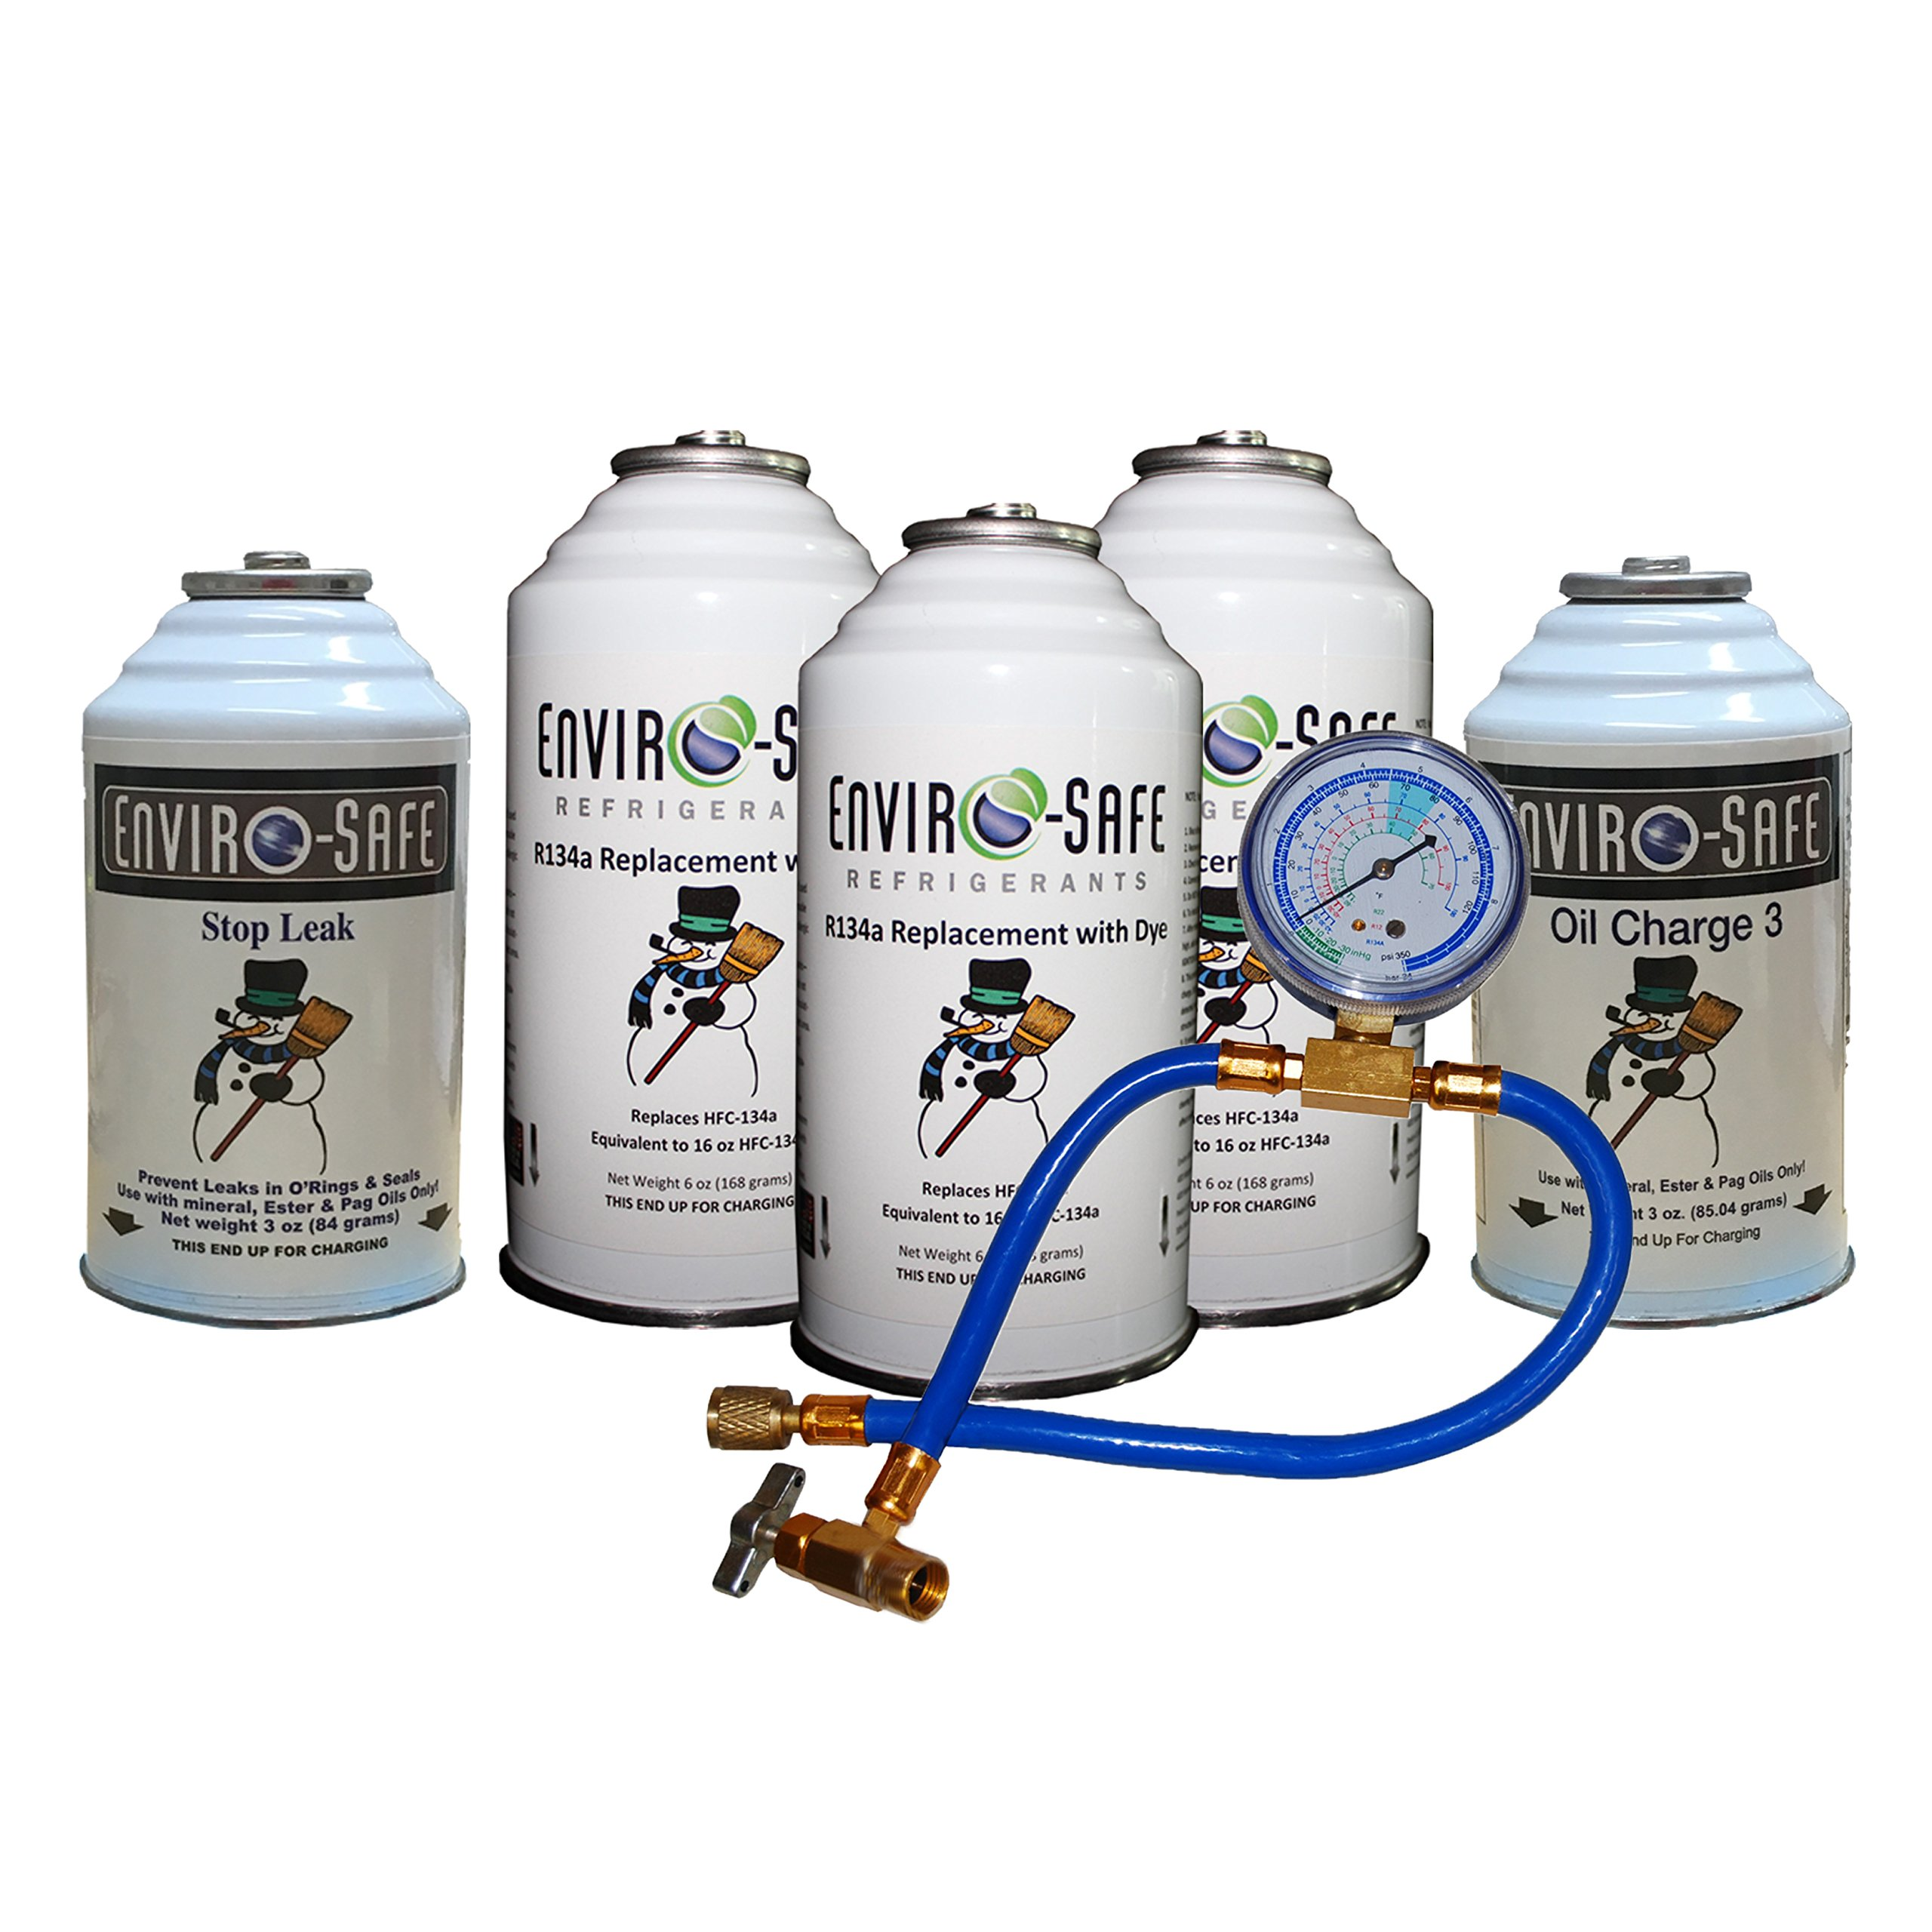 Enviro-Safe Vehicle Refrigerant Replacement Complete Car Kit 5 Cans Tap + Gauge by Enviro-Safe